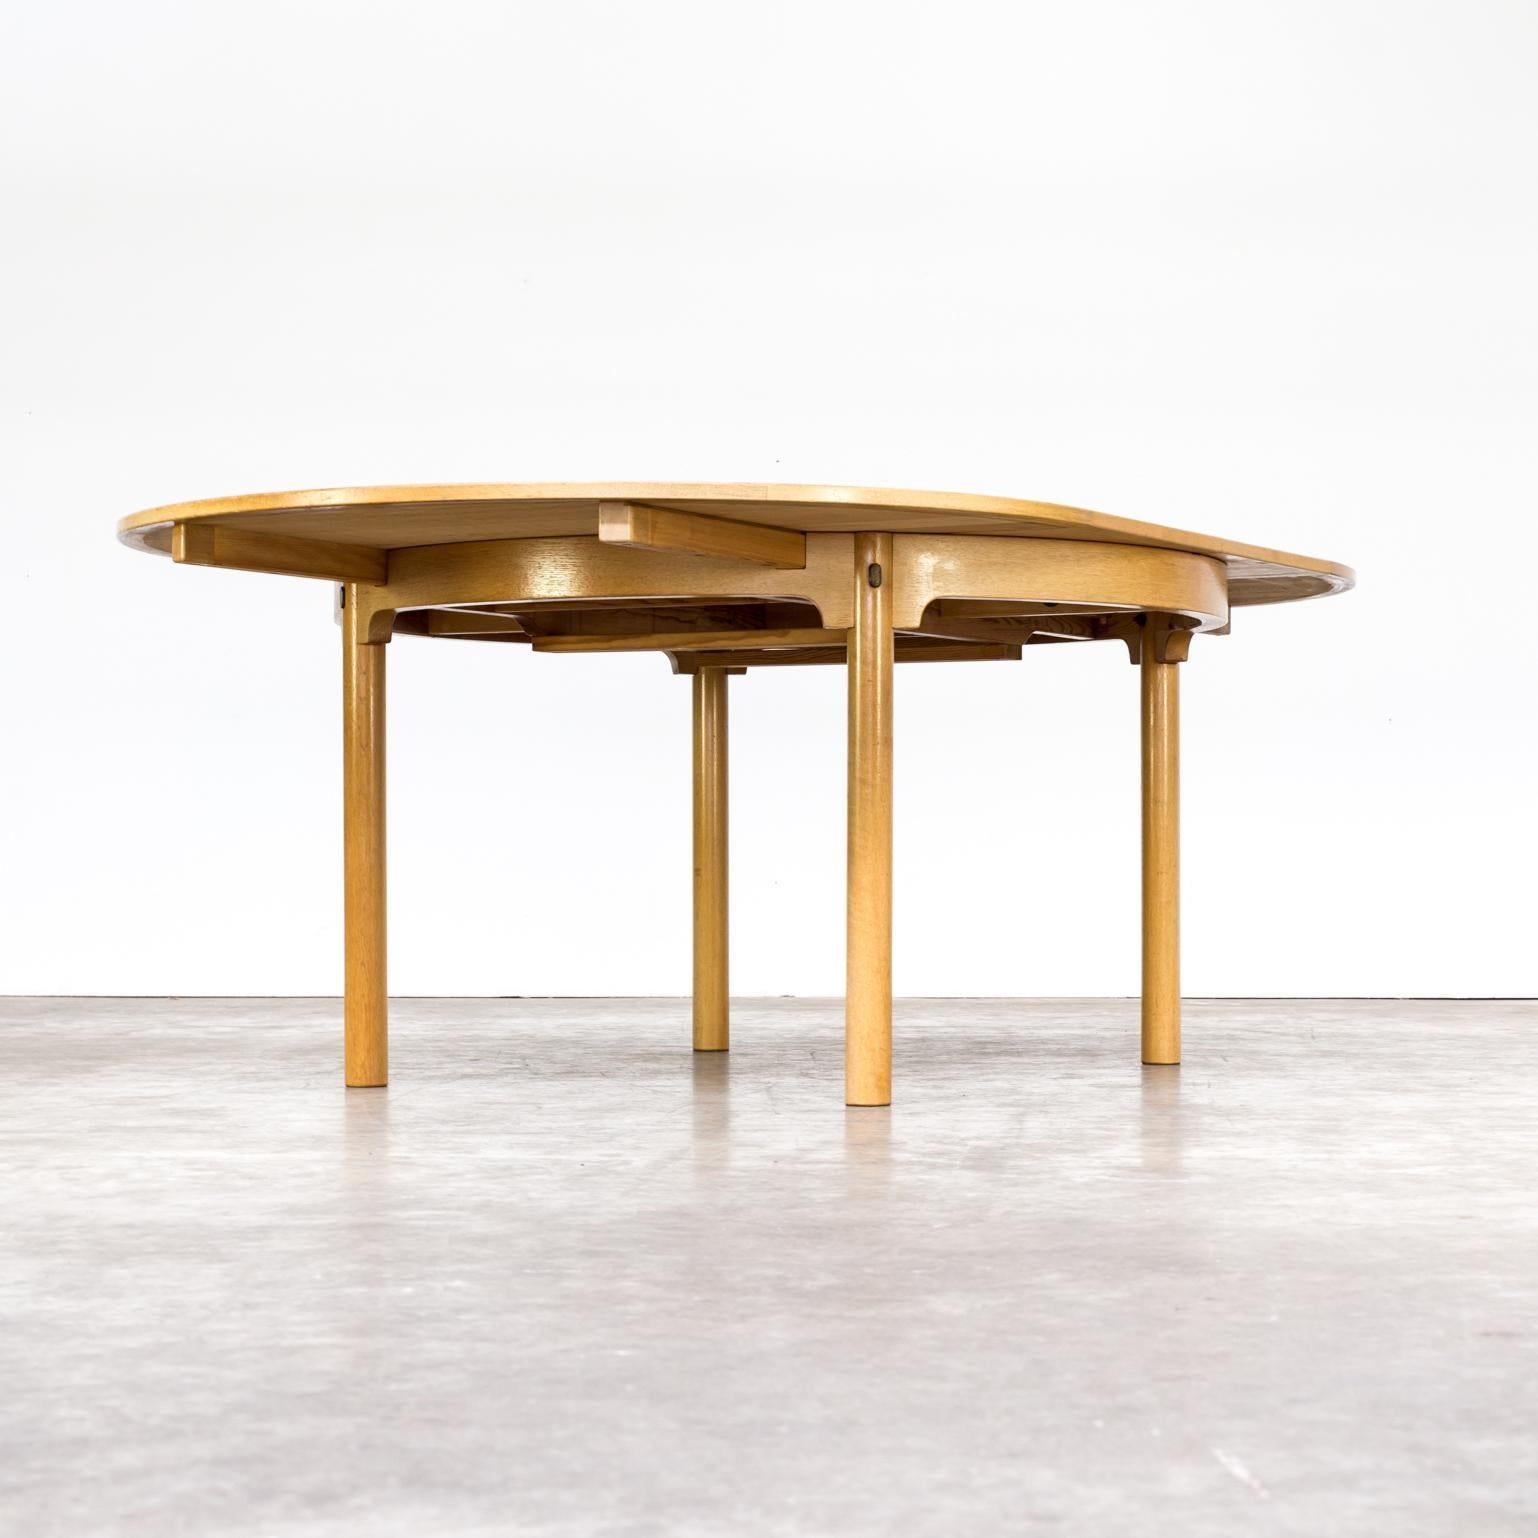 Table 140 Børge Mogensen Øresund Series Model 140 Dining Table For Karl Andersson Söner